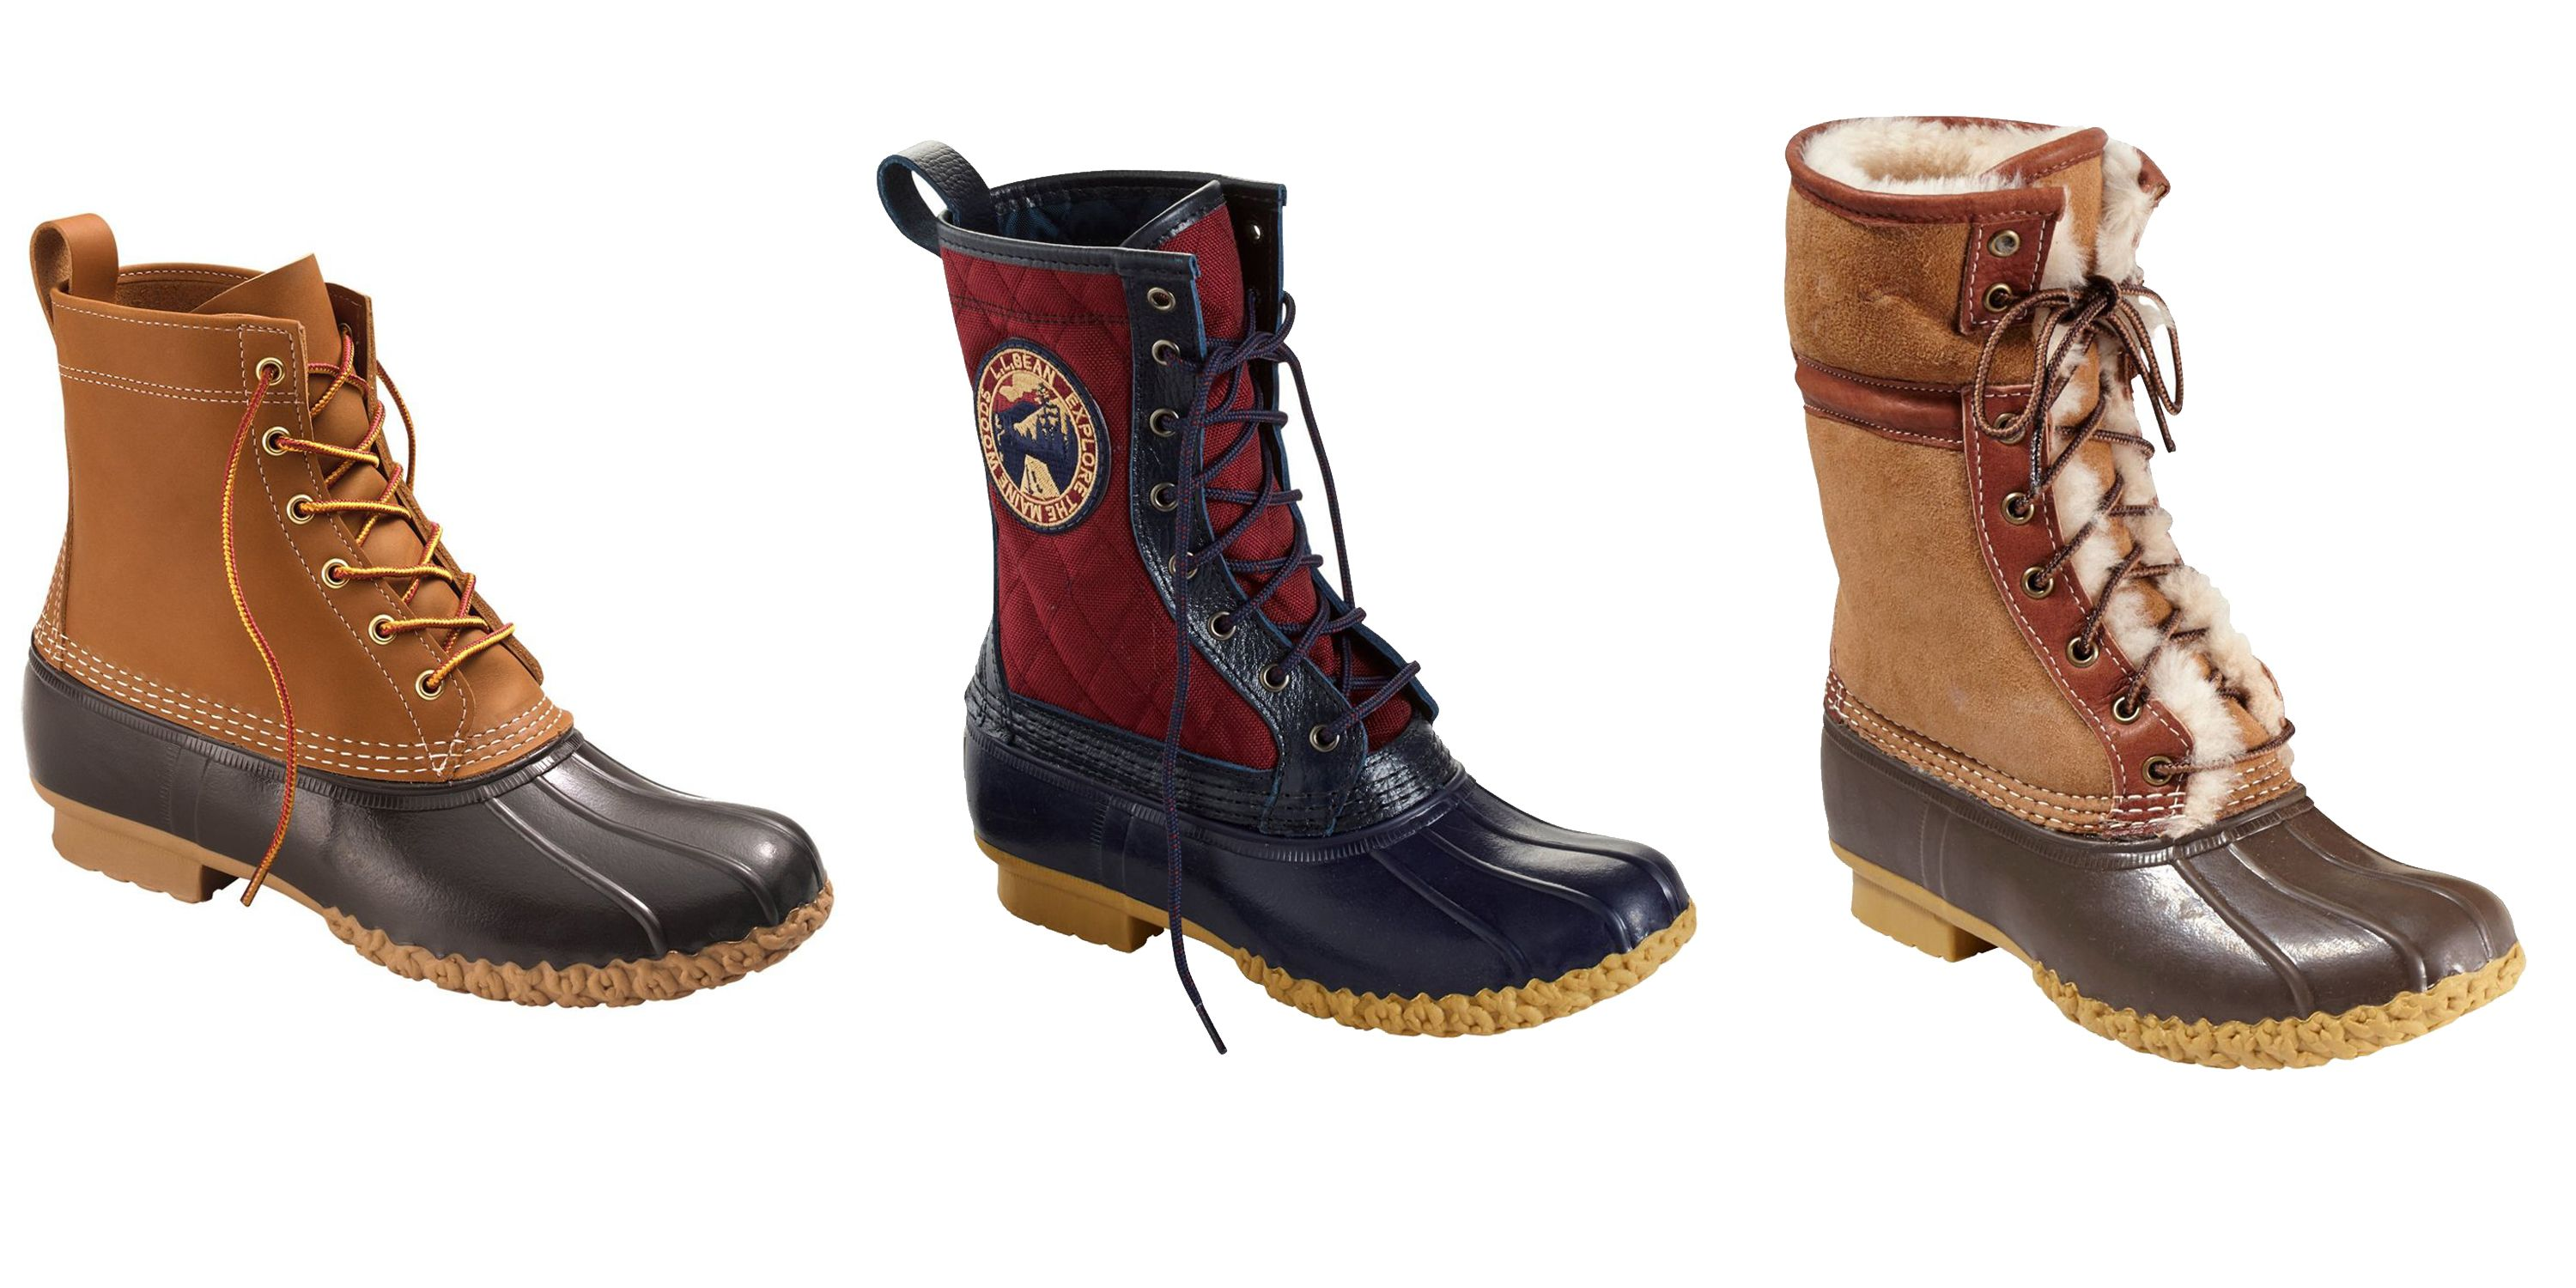 L.L. Bean's Iconic Boots Are 25 Percent Off Right Now Shop